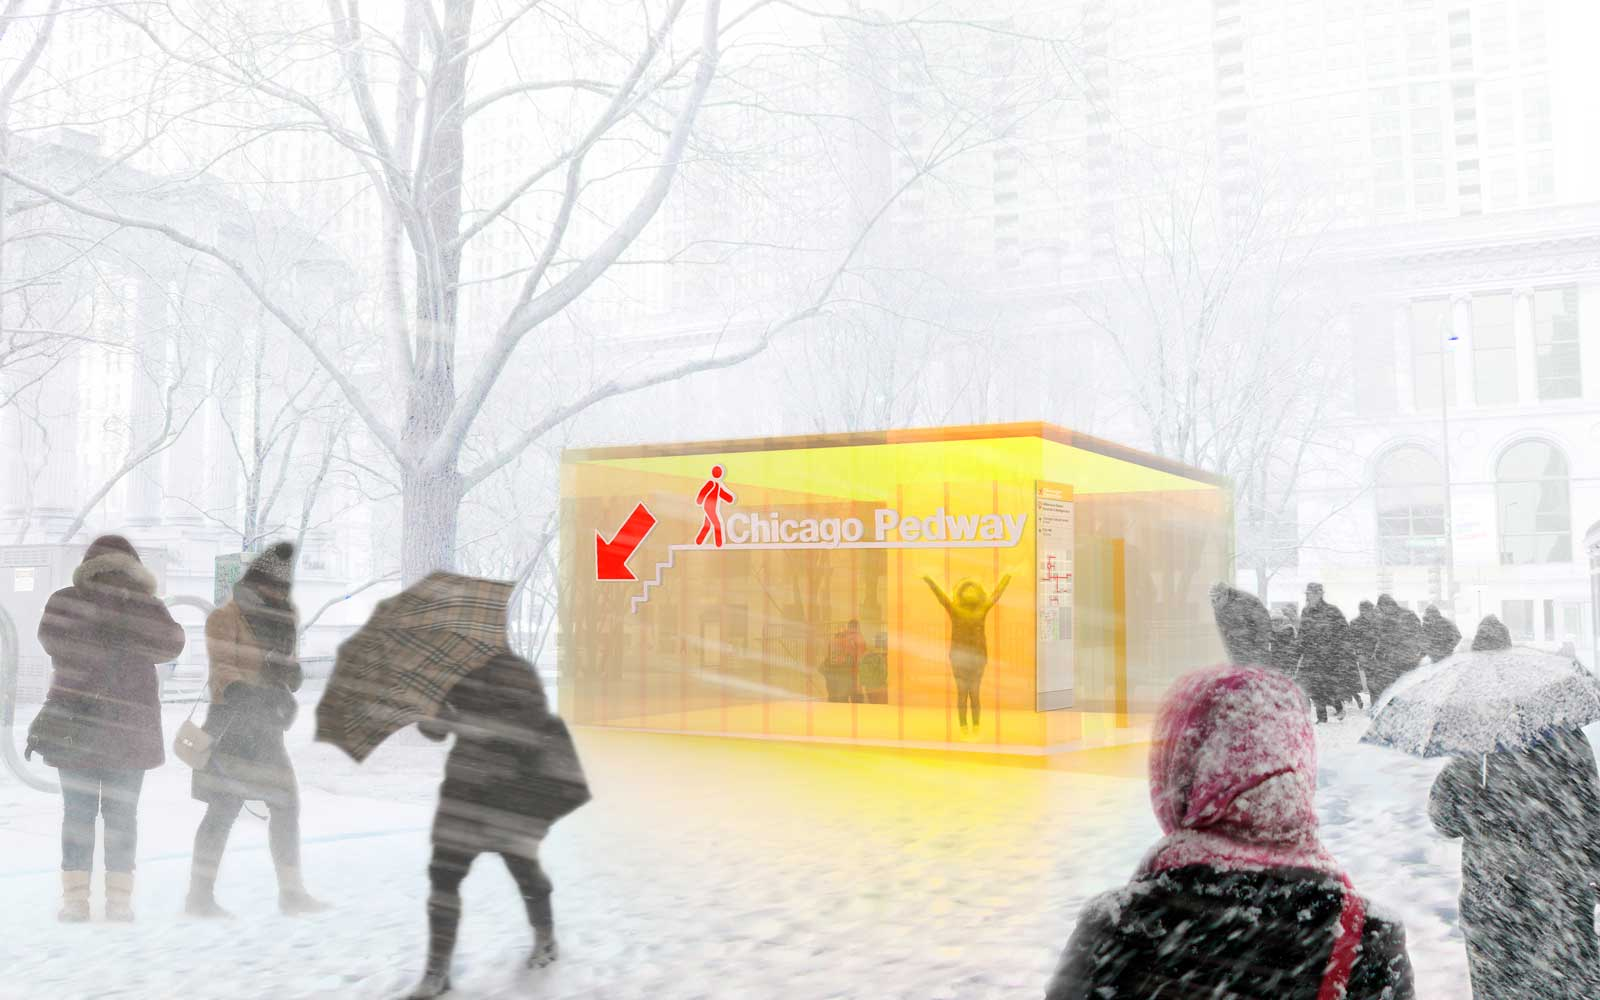 Proposed Millennium Park Entrance to the Chicago Pedway